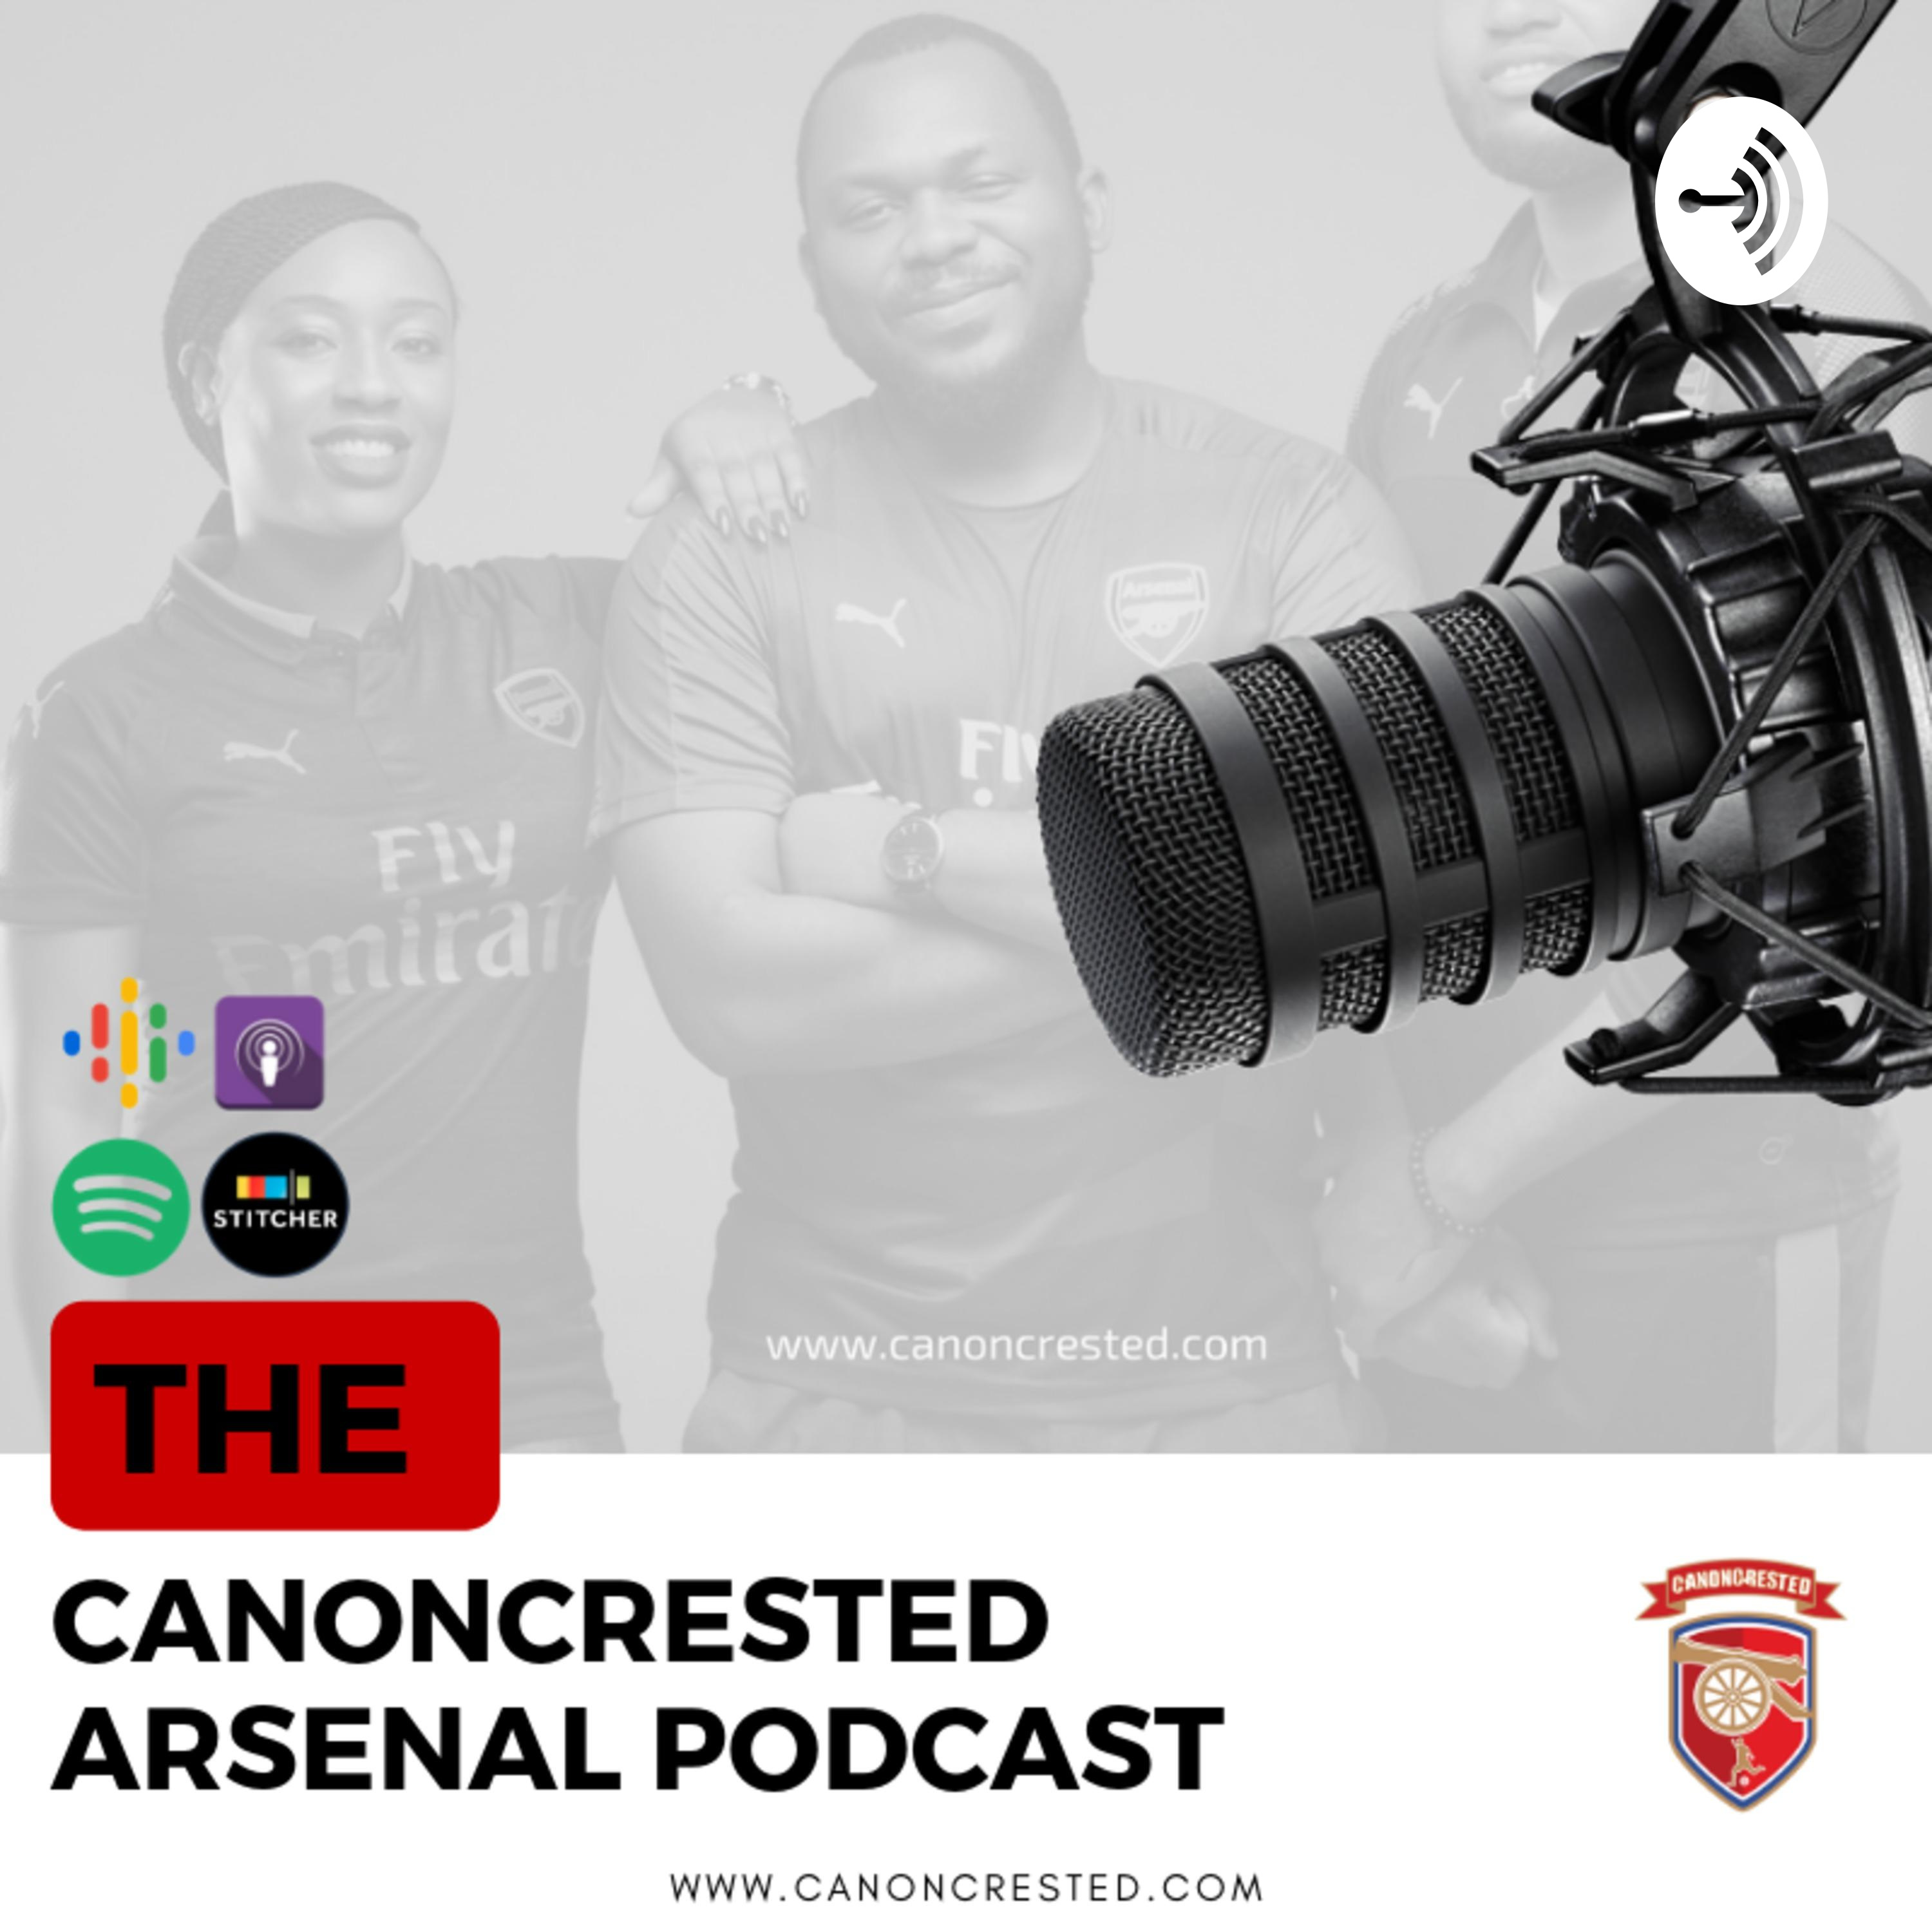 CanonCrested Arsenal Podcast